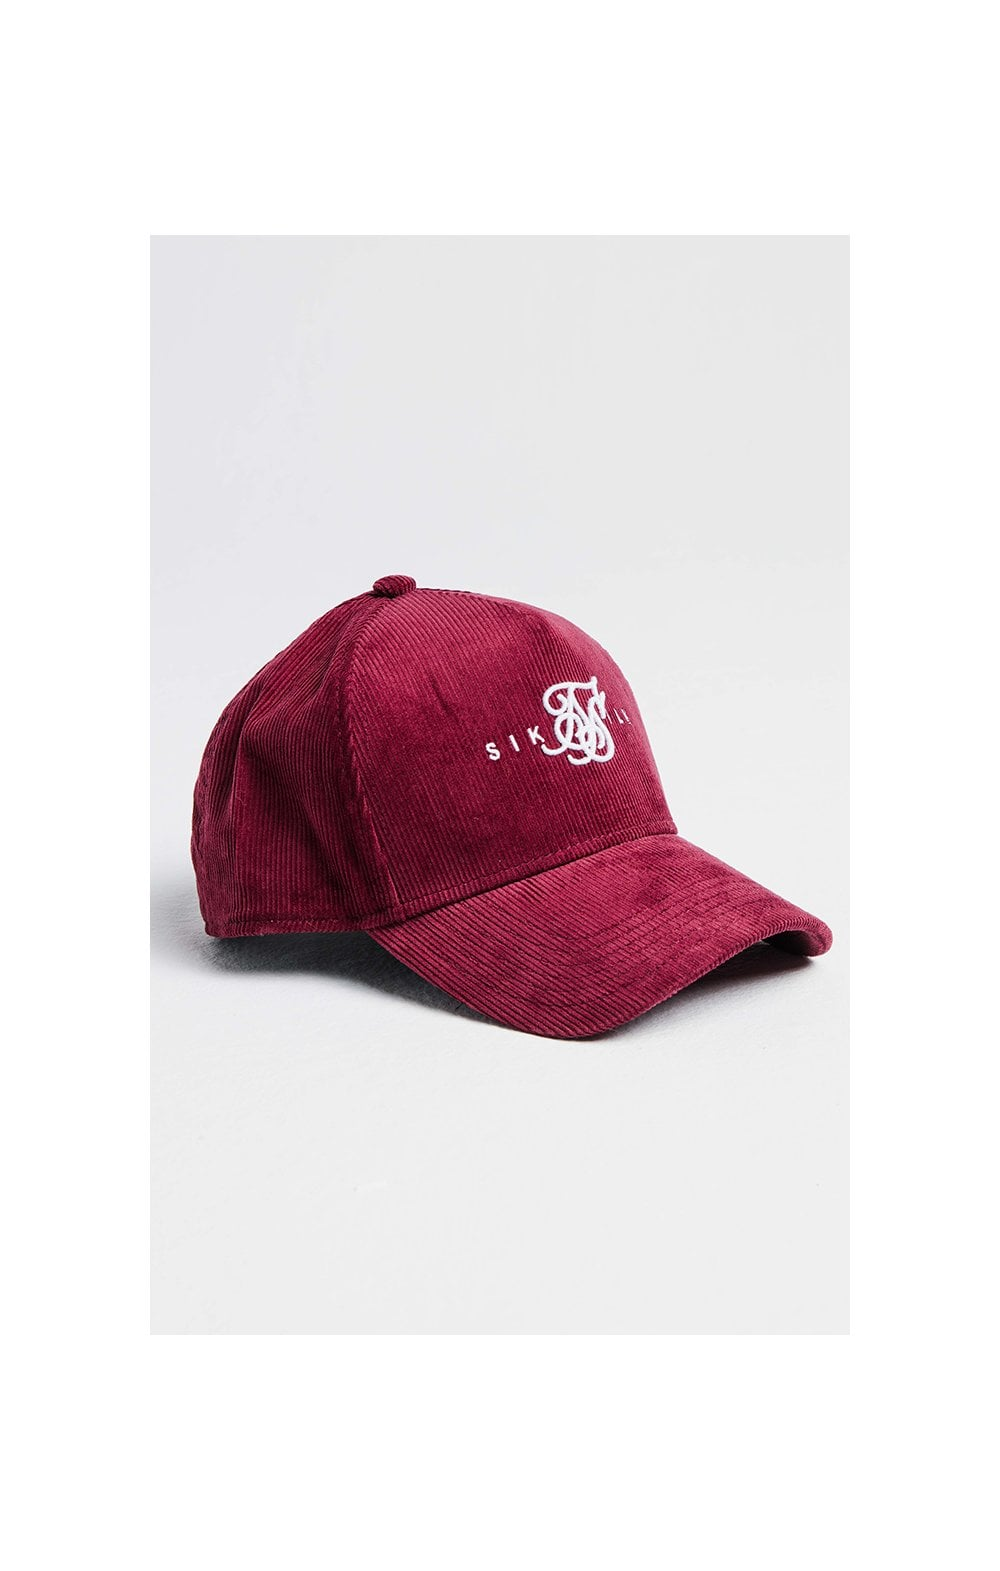 Load image into Gallery viewer, SikSilk Full Cord Trucker - Burgundy